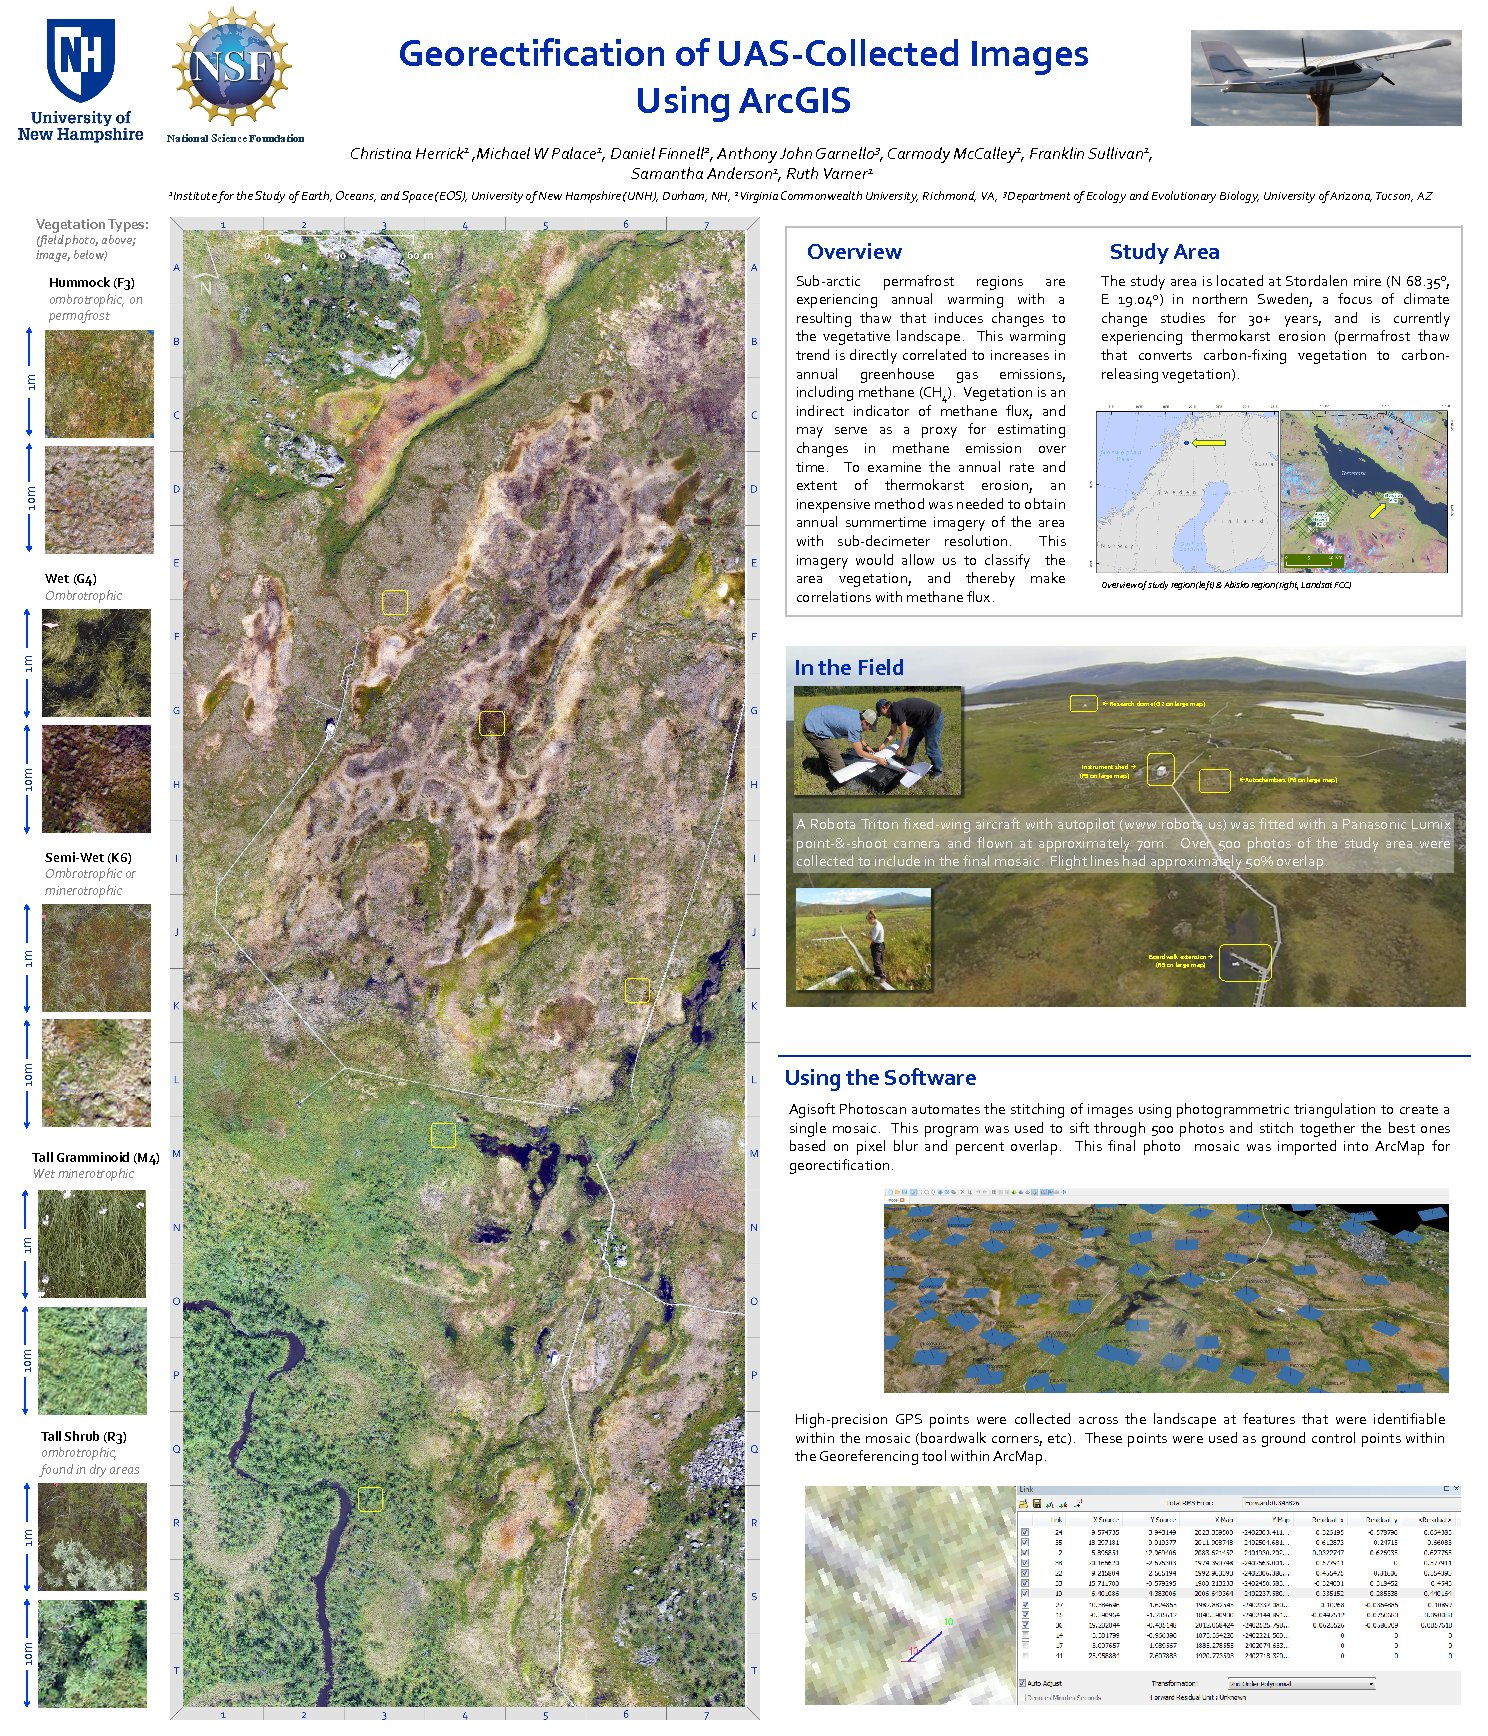 Georectification Of Uas-Collected Images Using Arcgis by herrick